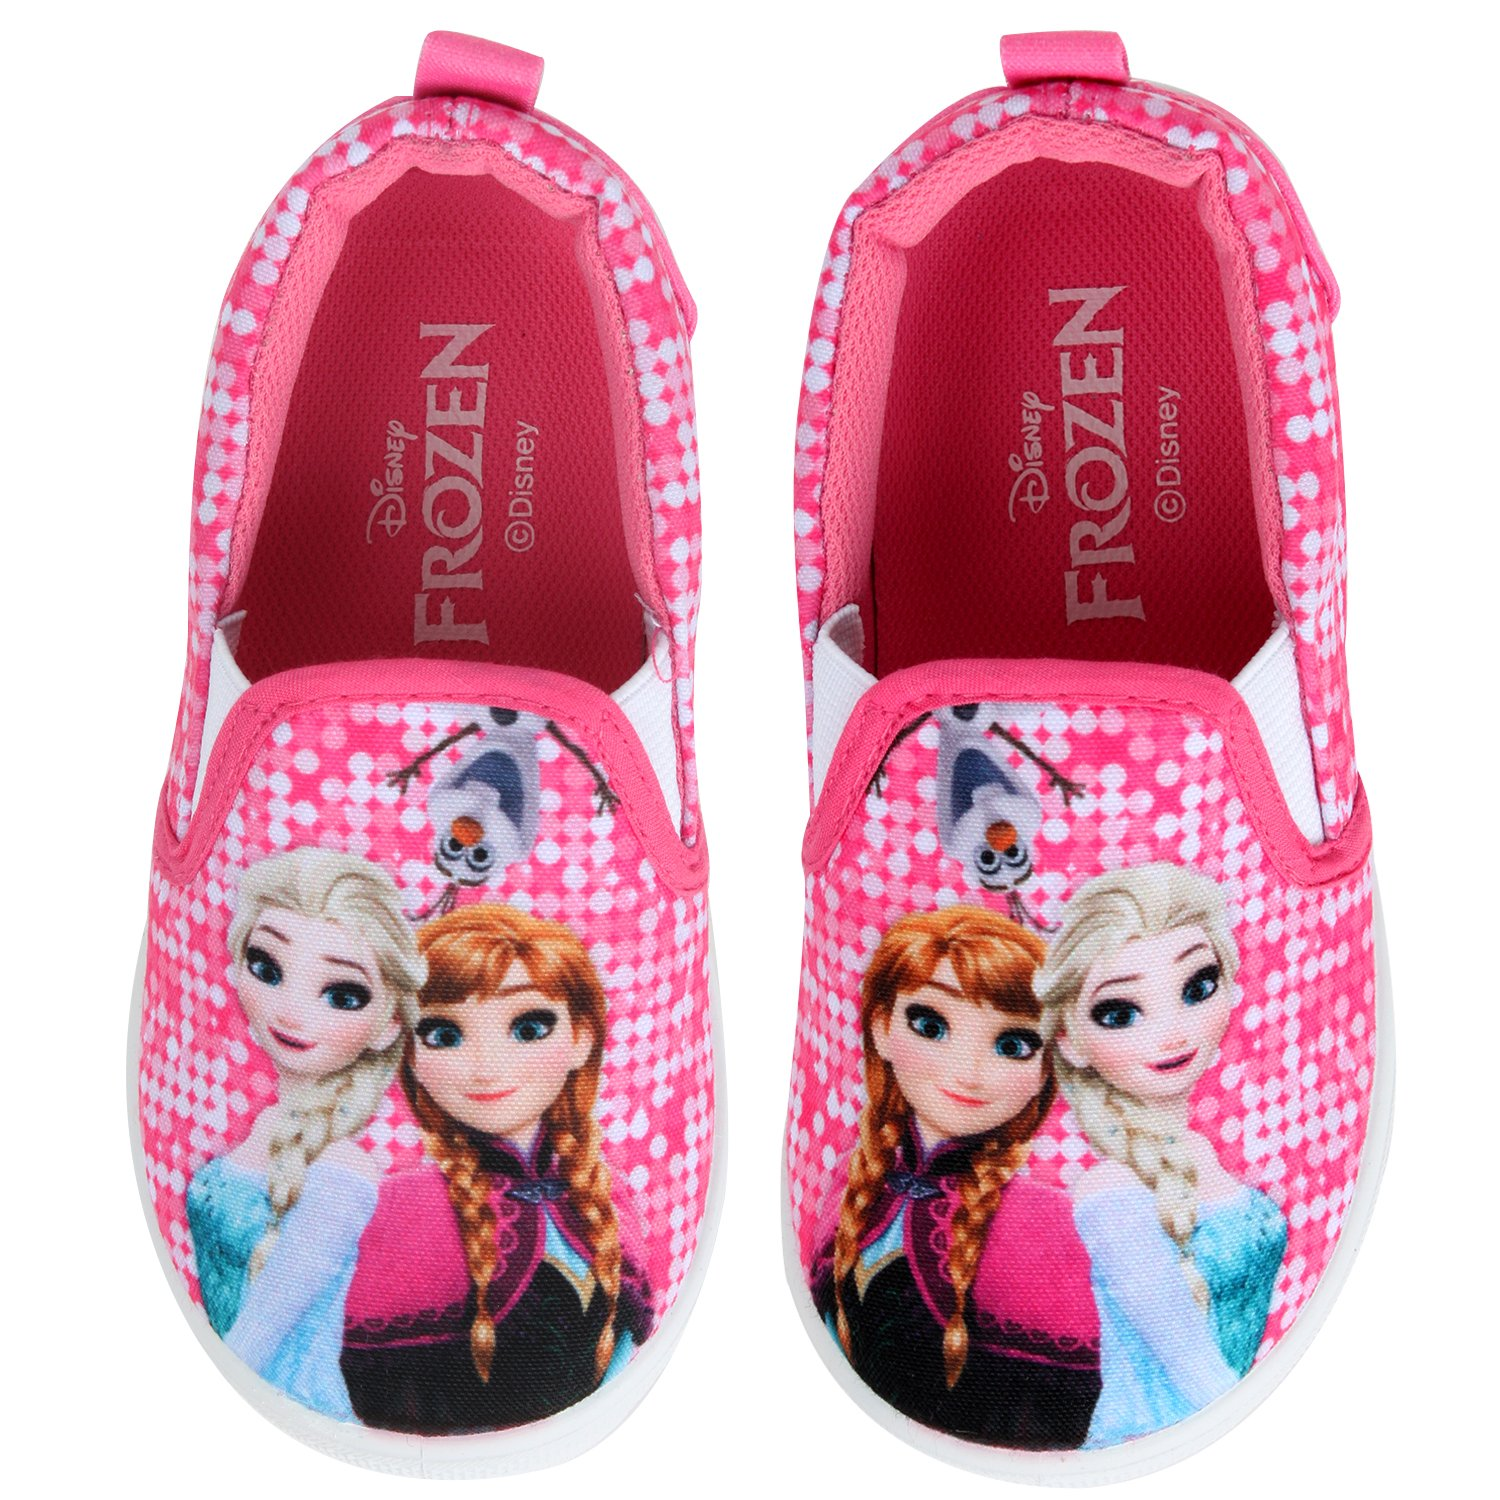 Disney Frozen Elsa Anna Olaf Candy Girls Pink Slip On Sneaker Shoes (Parallel Import/Generic Product) (8 M US Toddler)